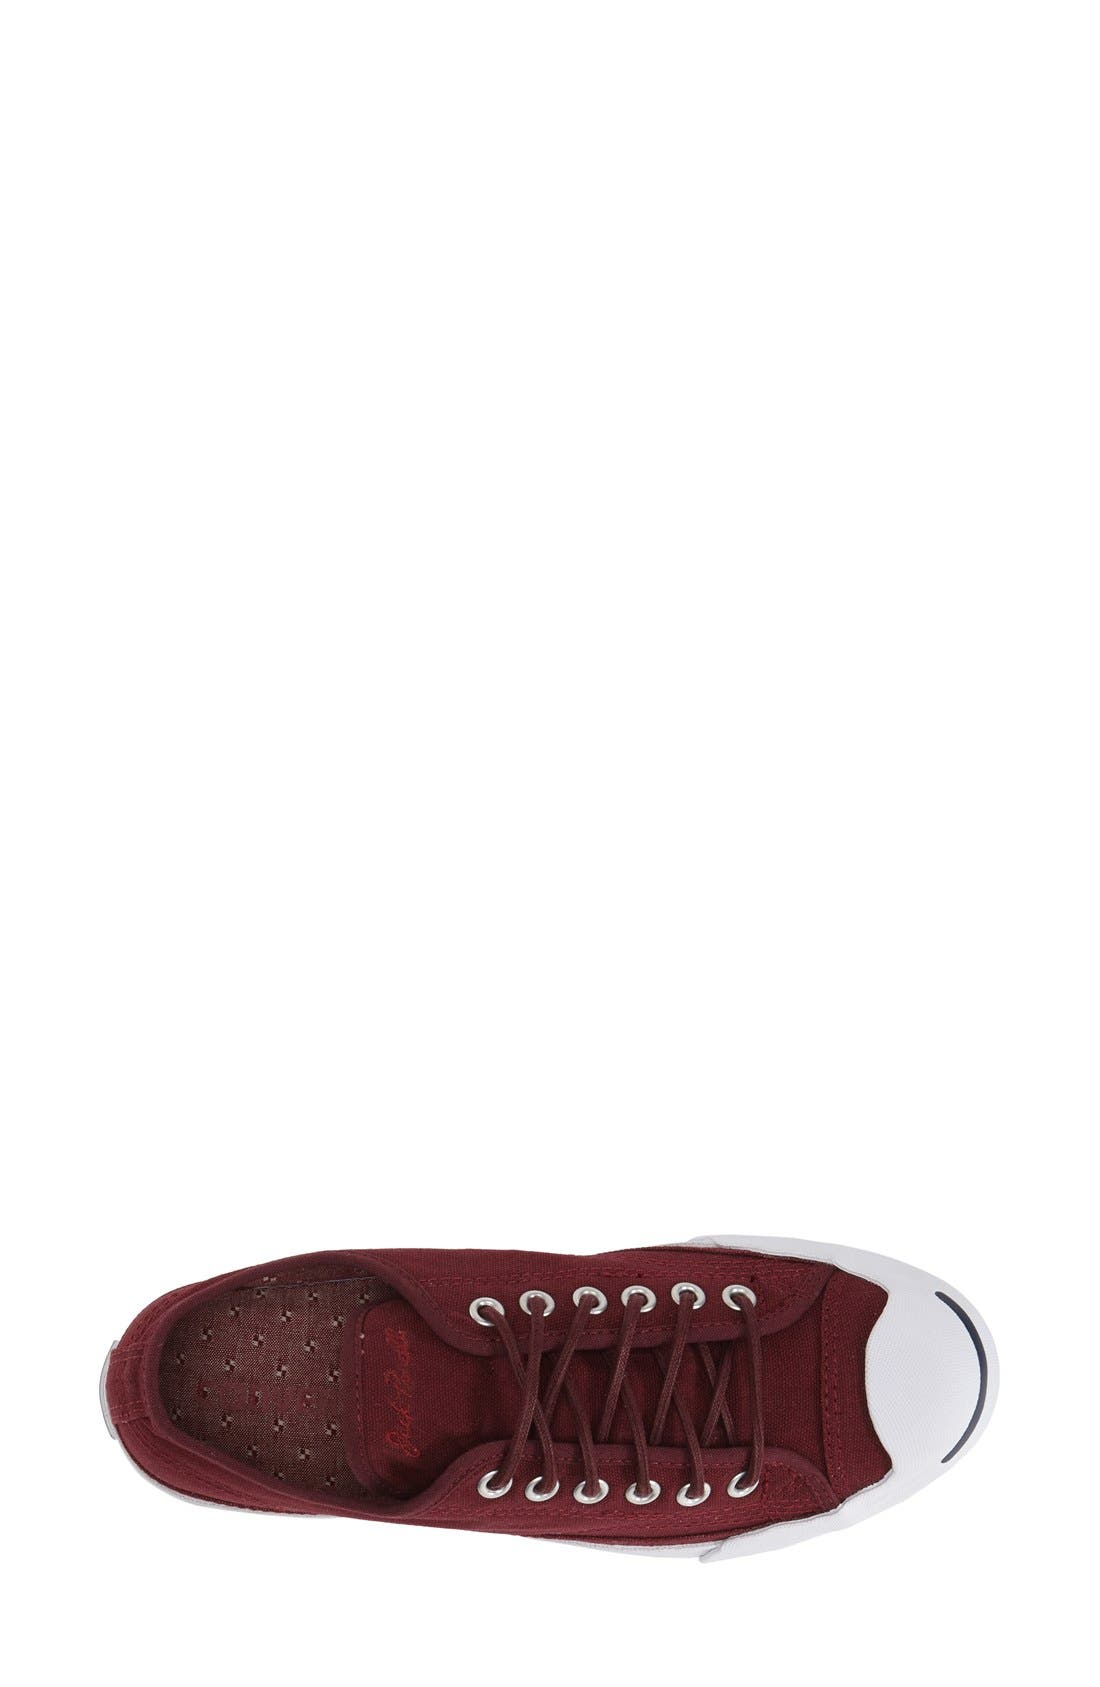 'Jack Purcell' Low Top Slip On Sneaker,                             Alternate thumbnail 9, color,